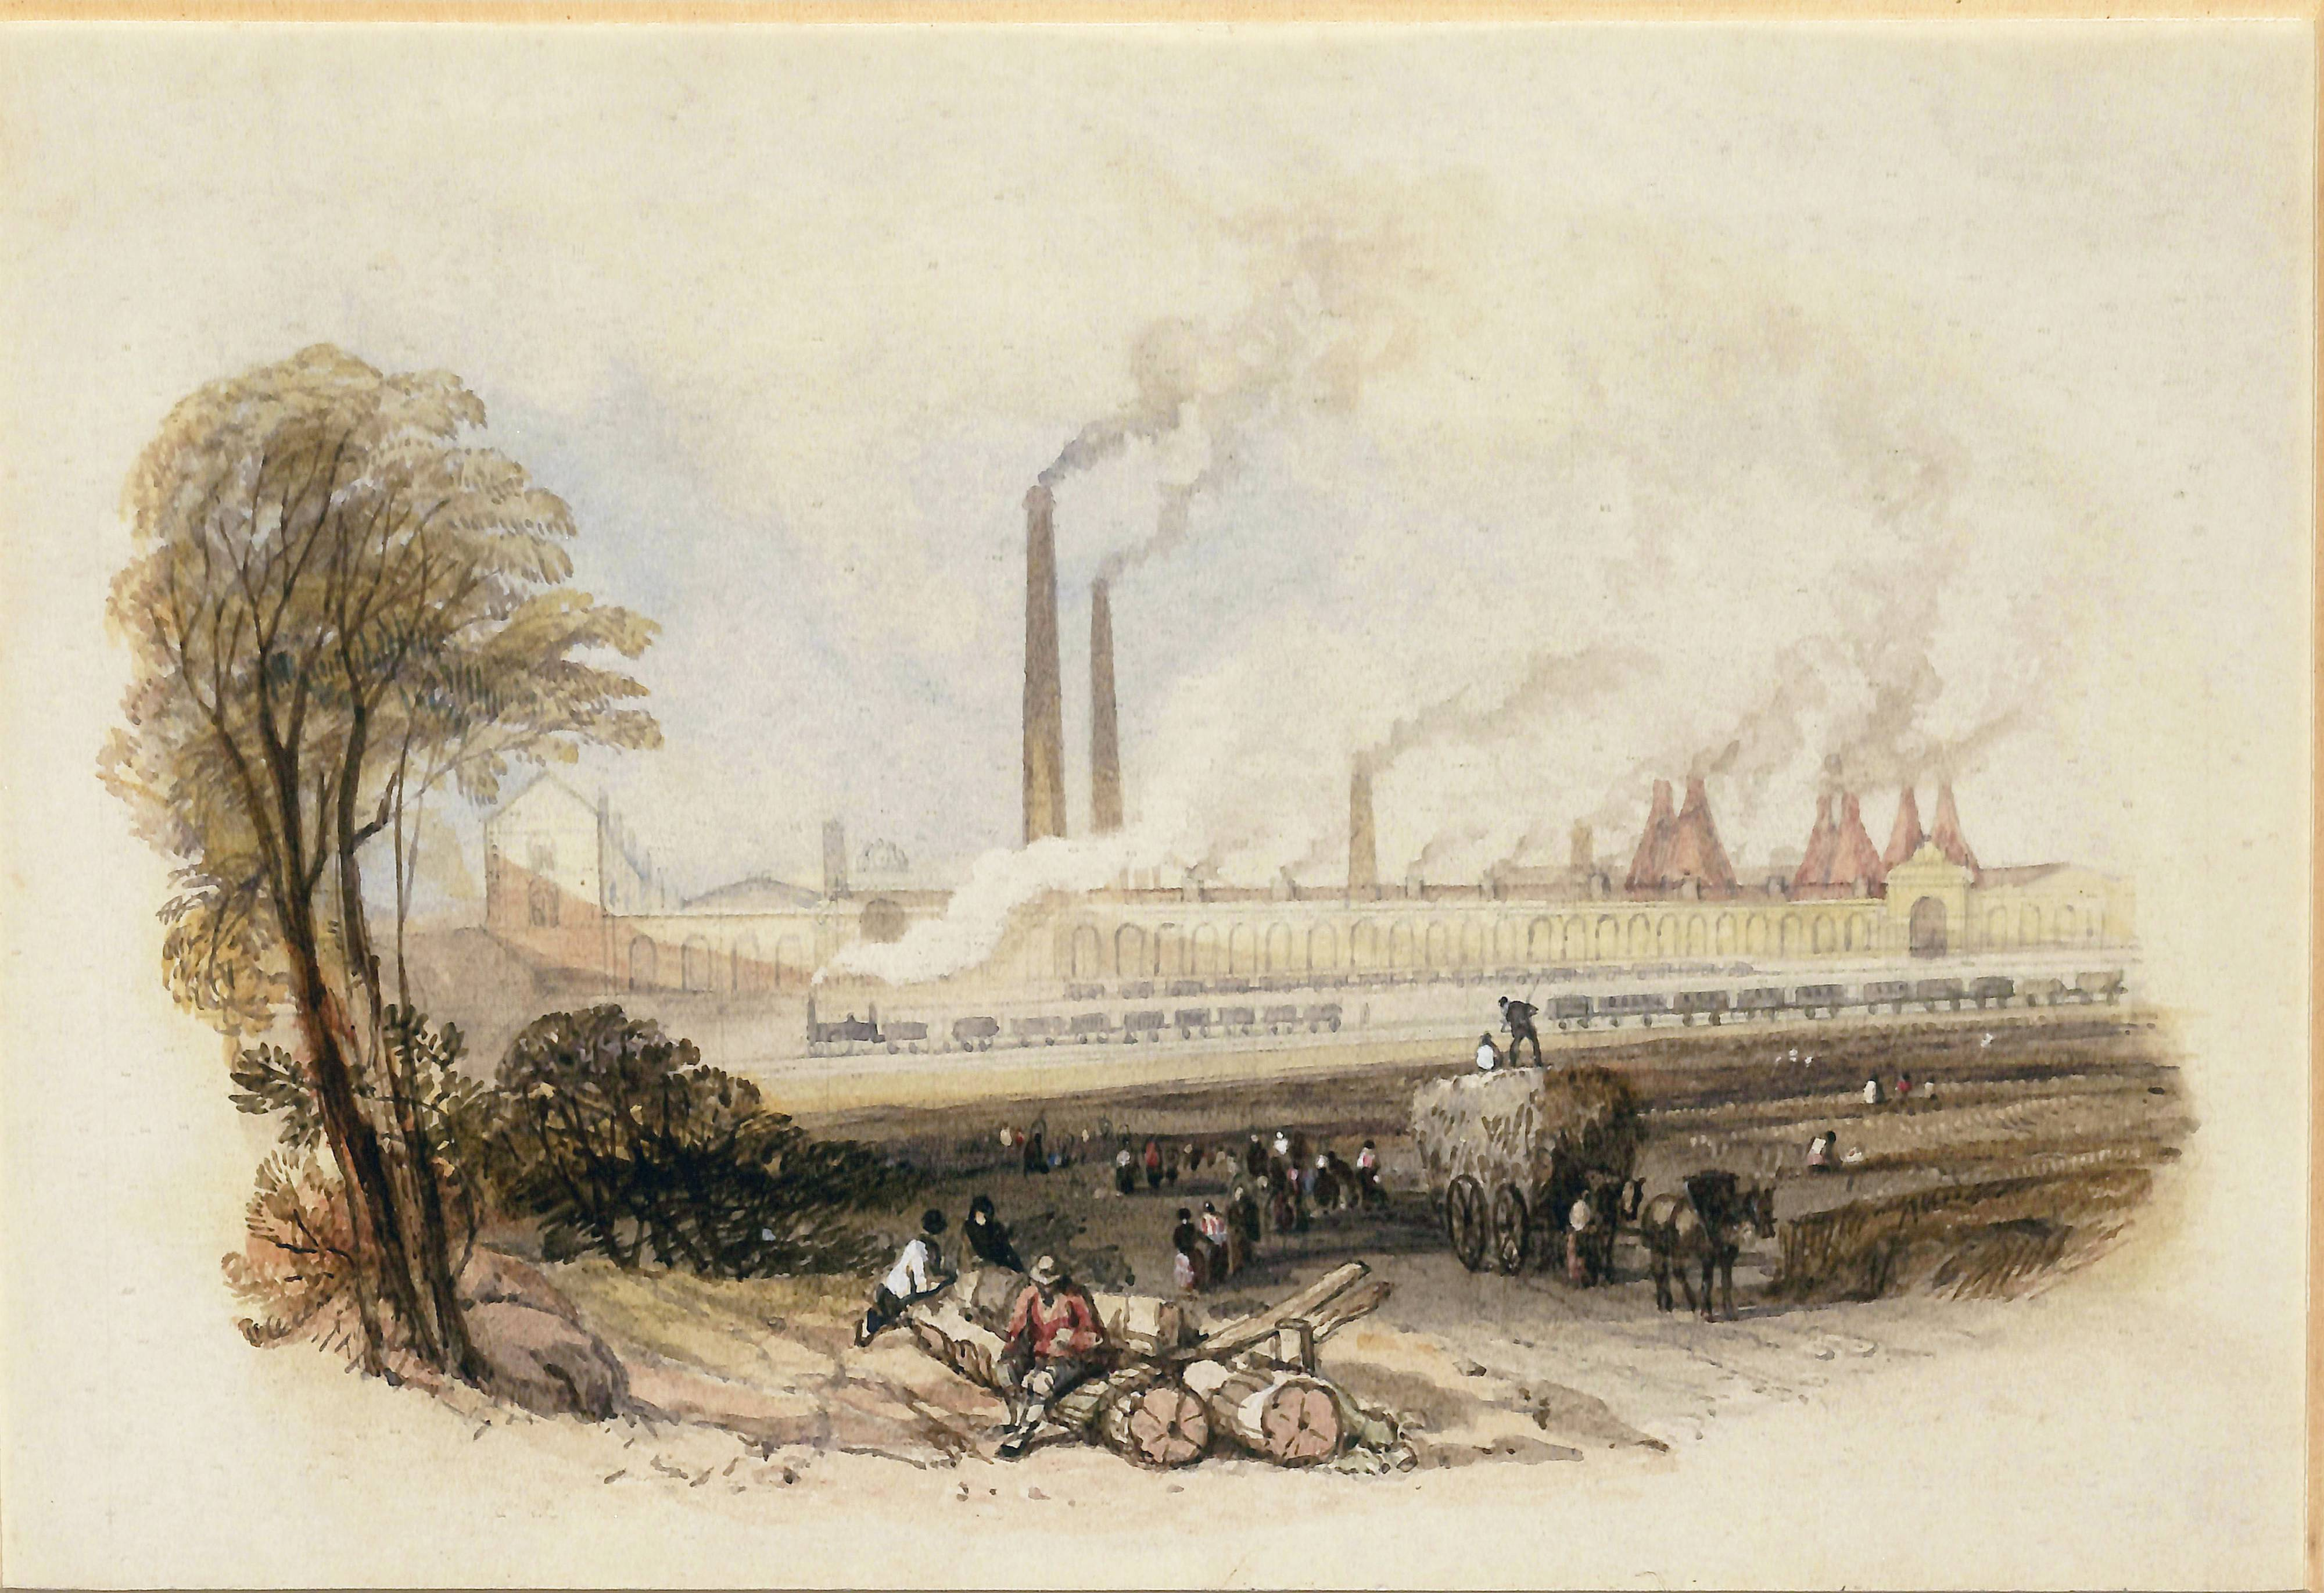 Watercolour painting. Men rest on two felled logs in the foreground. Behind them, a line of pedestrians and a horse-drawn cart walk along a dirt road. In the distance a pottery works is visible as a low building with tall smoking chimneys, some conical in shape. A small steam train with cargo carriages crosses in front of the building.